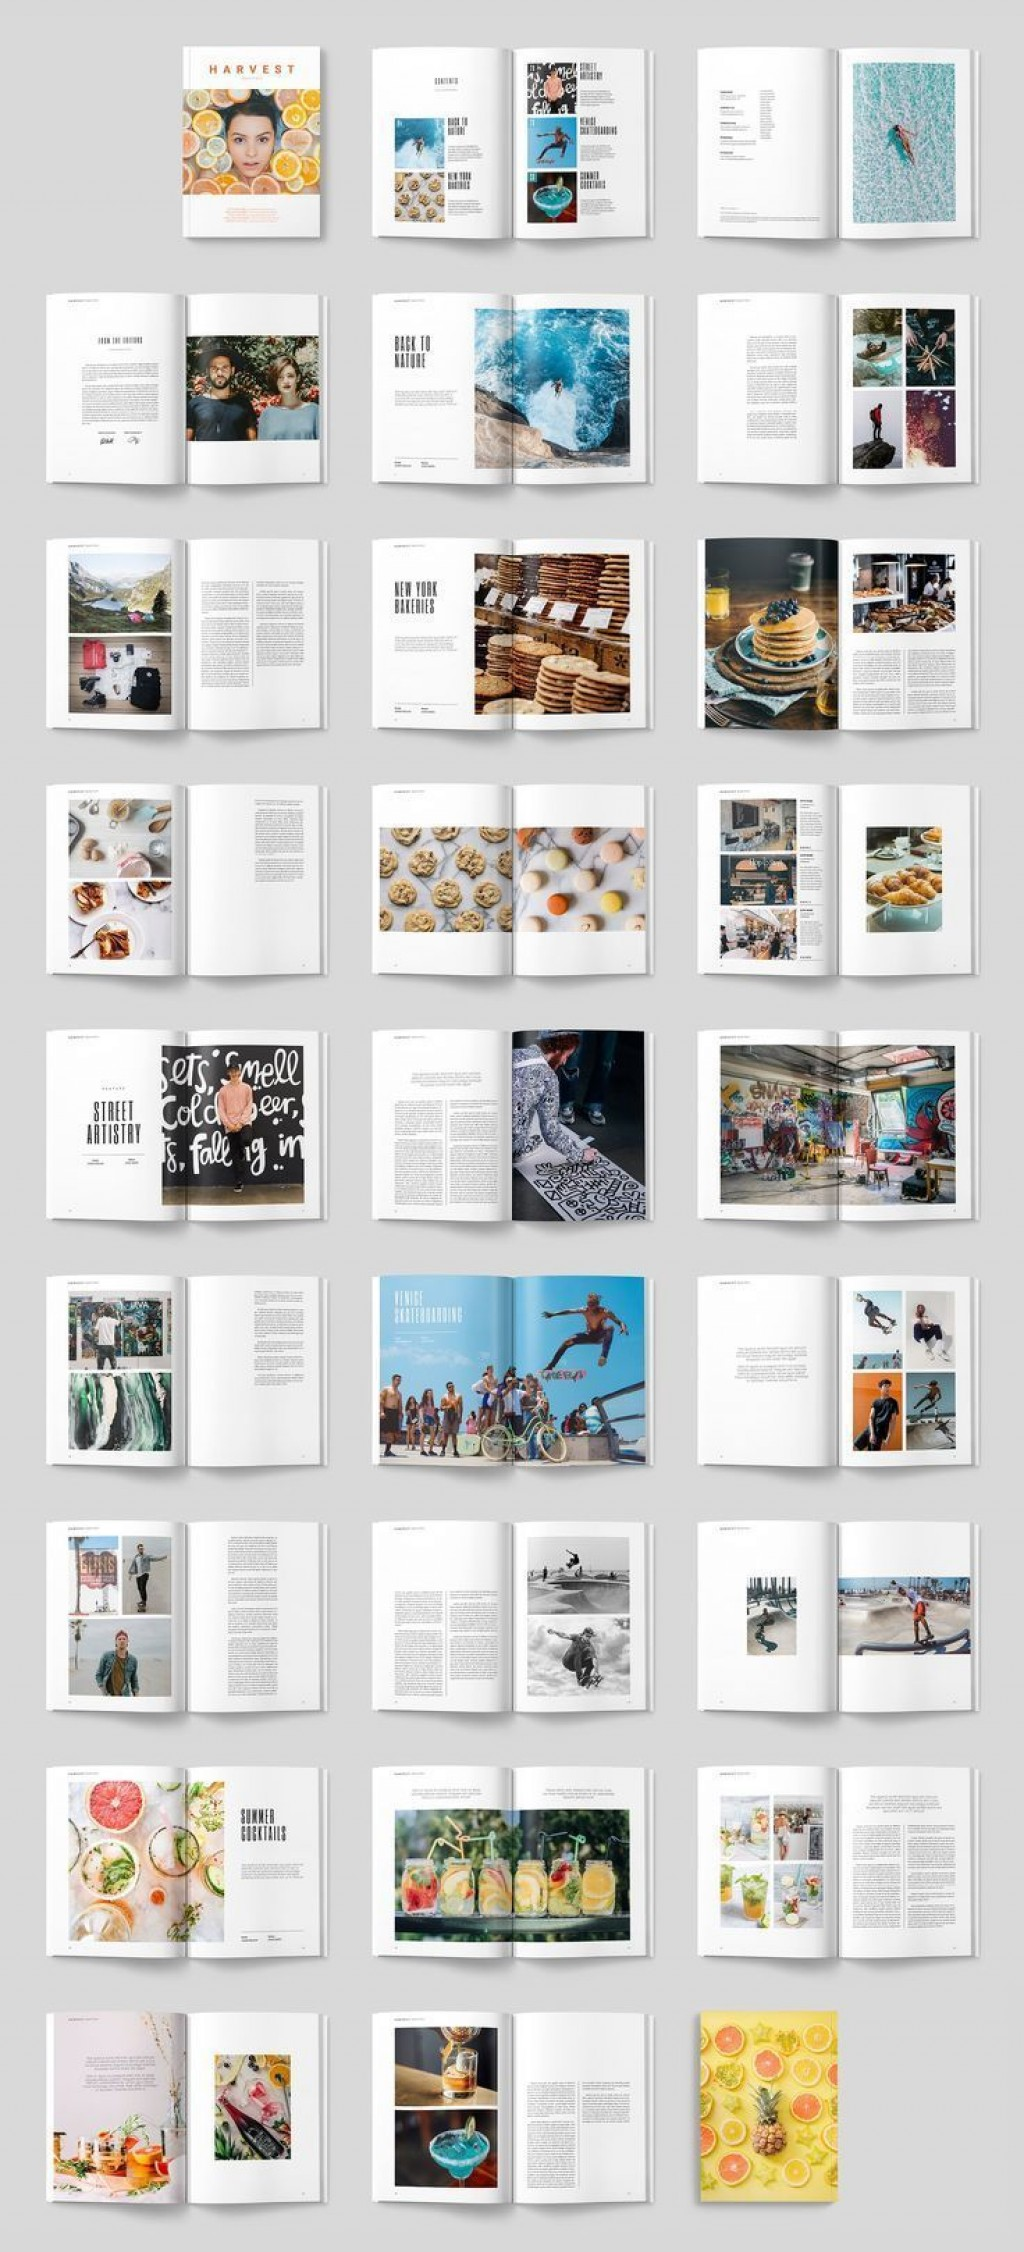 000 Magnificent Free Magazine Layout Template High Definition  Templates For Word Microsoft PowerpointLarge